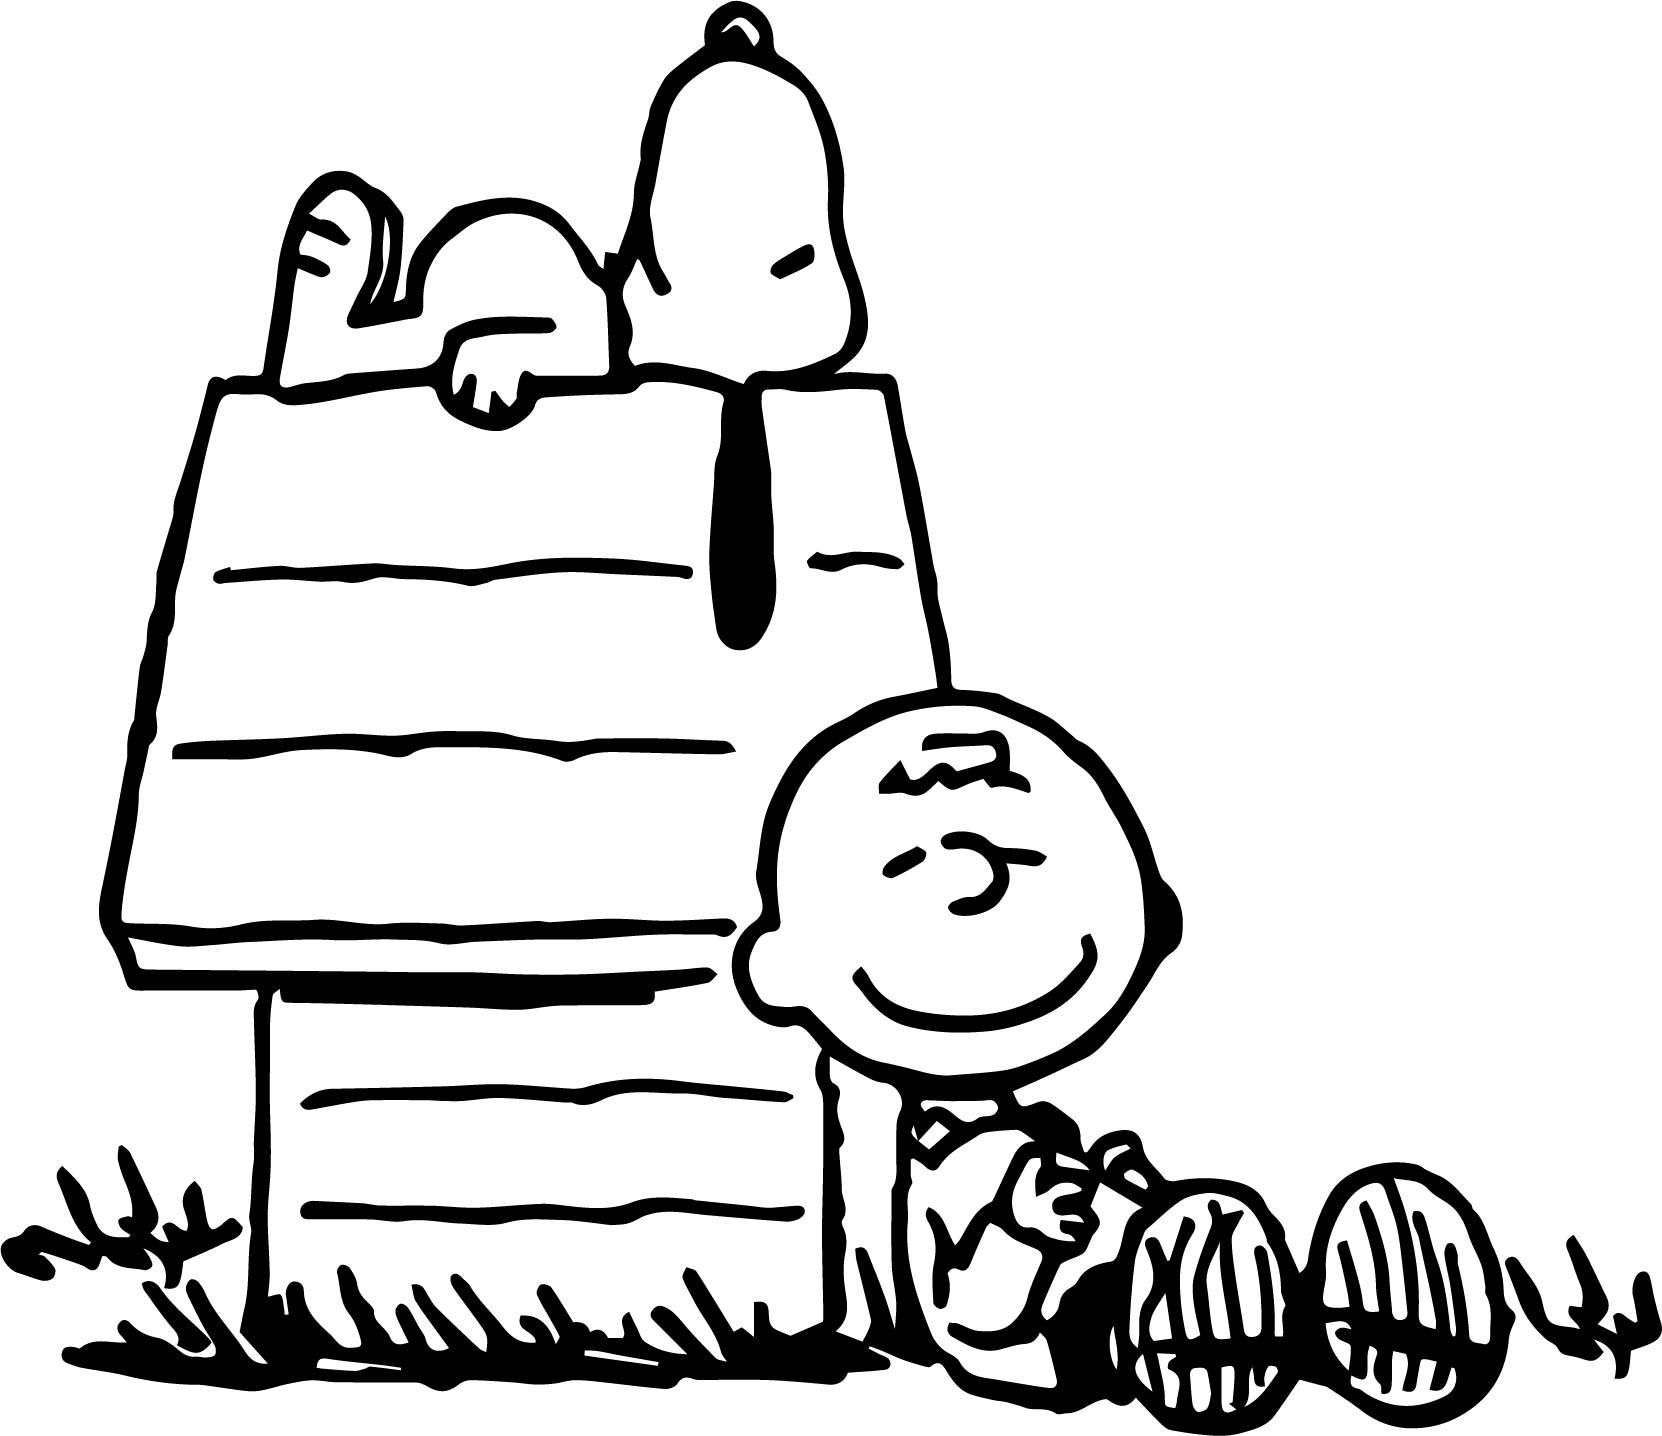 Snoopy Charlie Brown Peanuts Coloring Pages | Wecoloringpage